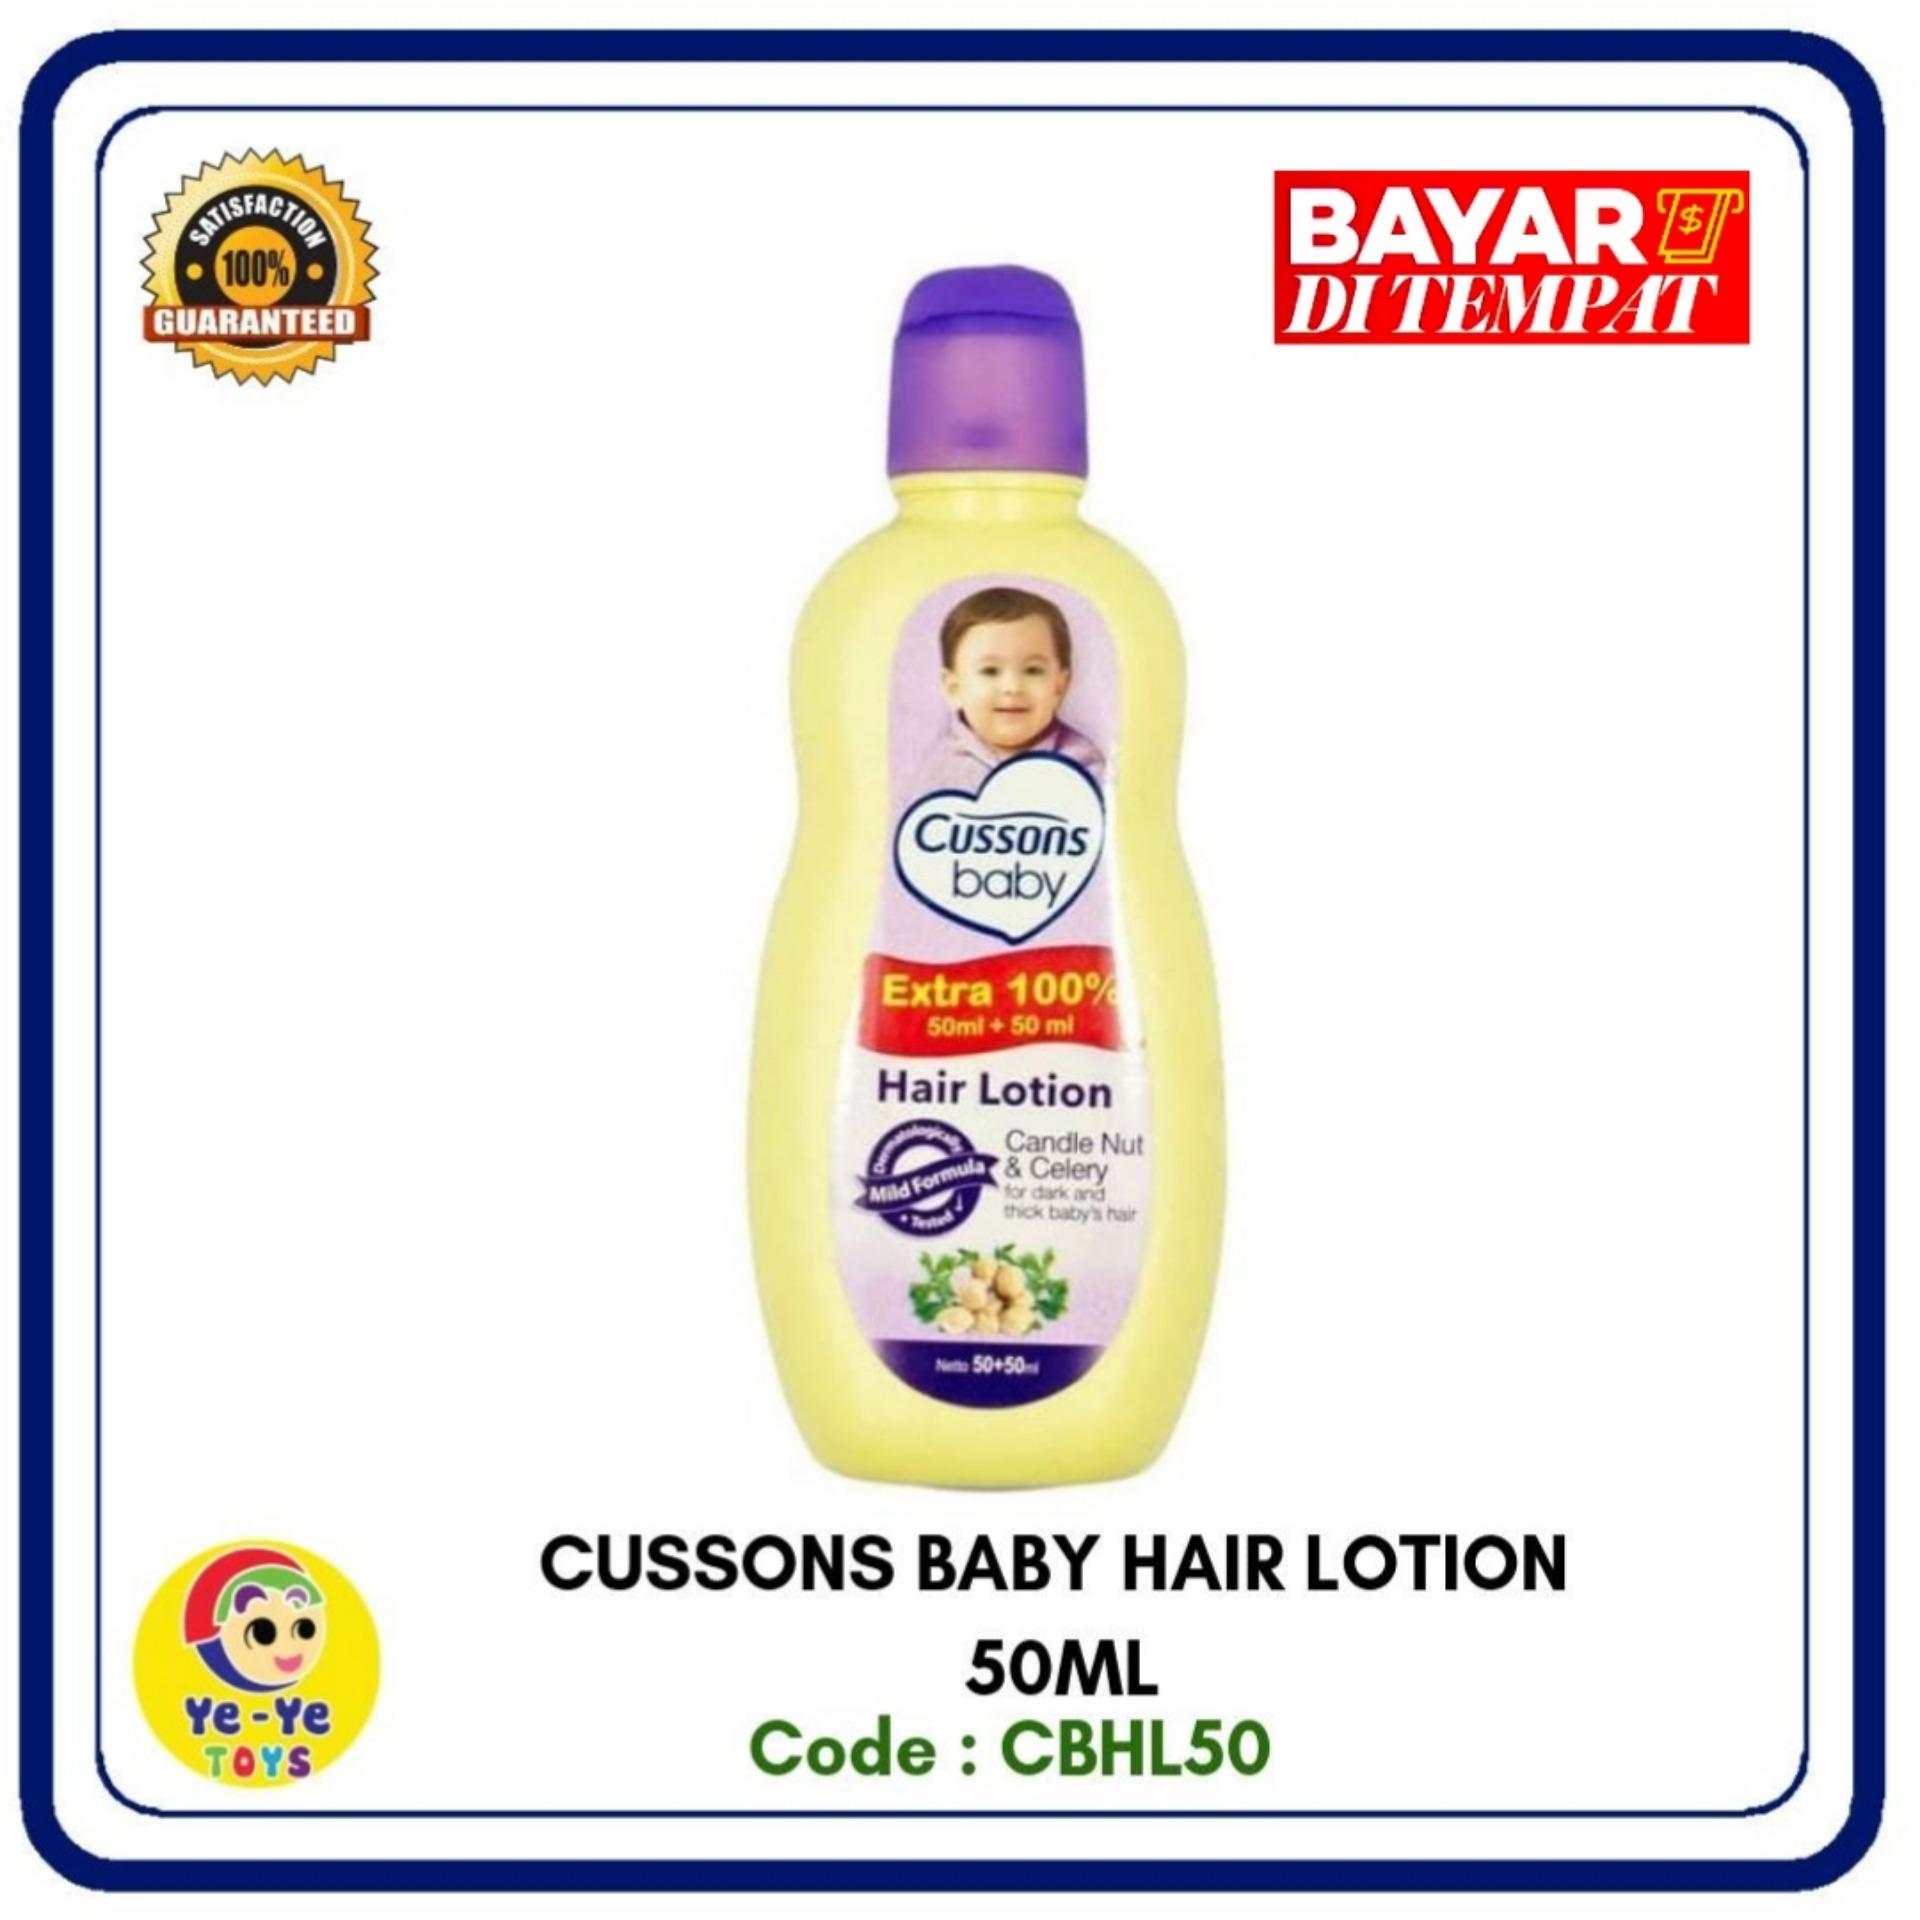 Cussons Baby Hair Lotion 50ml+extra100%/ Minyak Rambut Bayi By Yeye Toys.